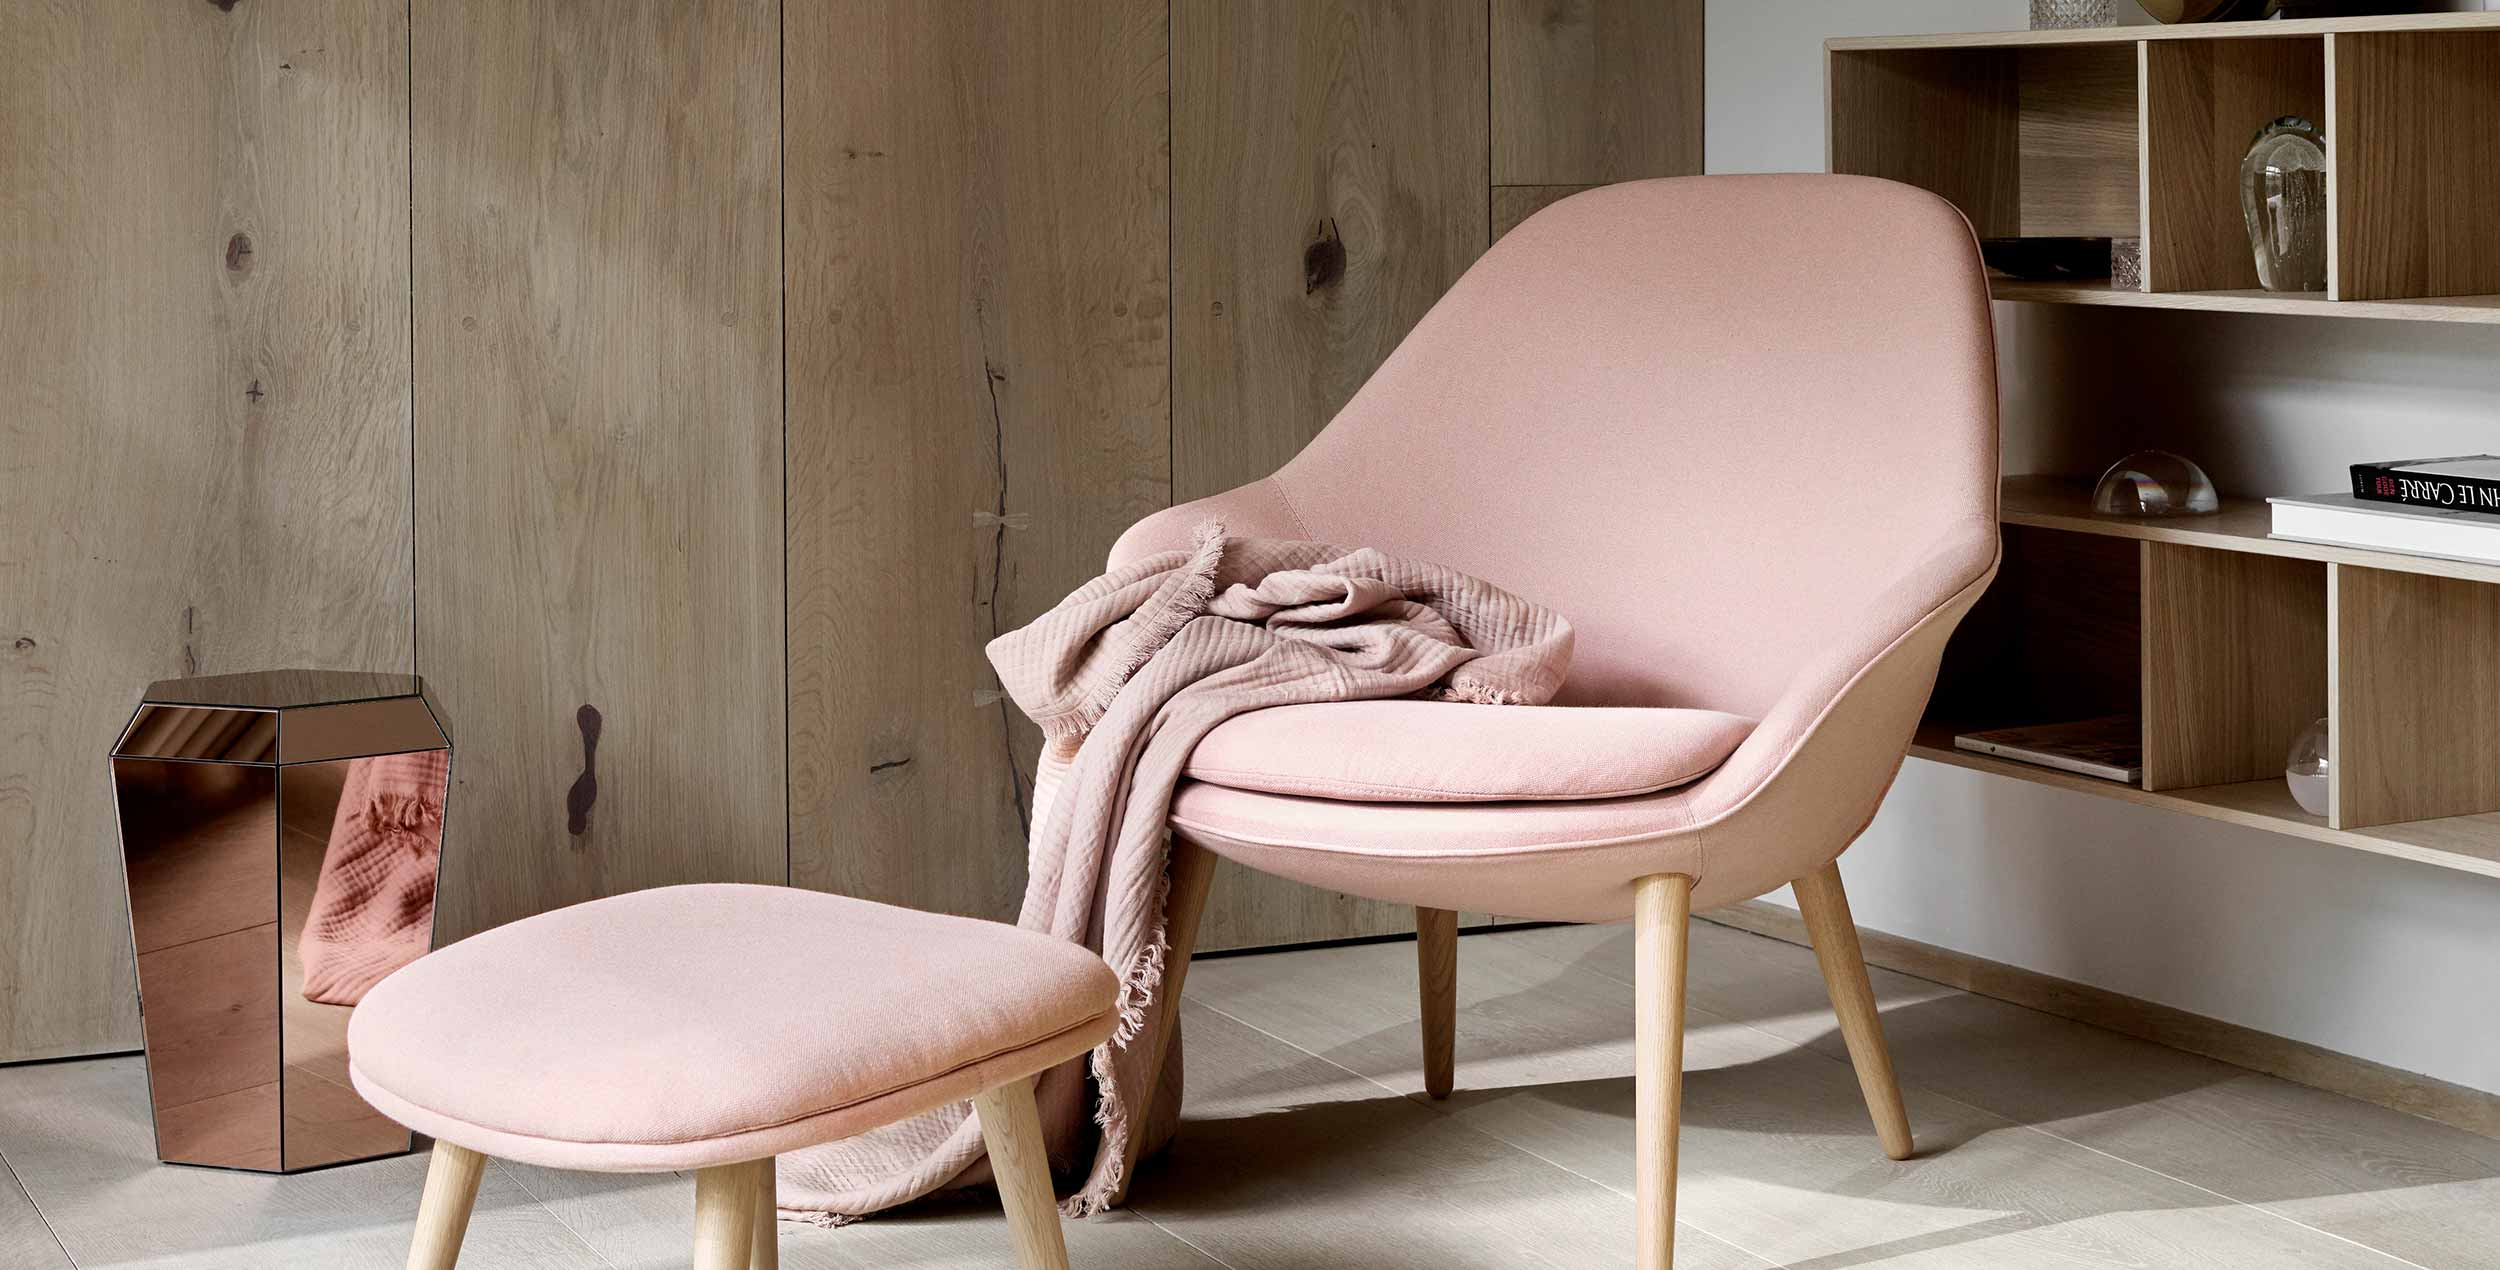 Dusty rose chair